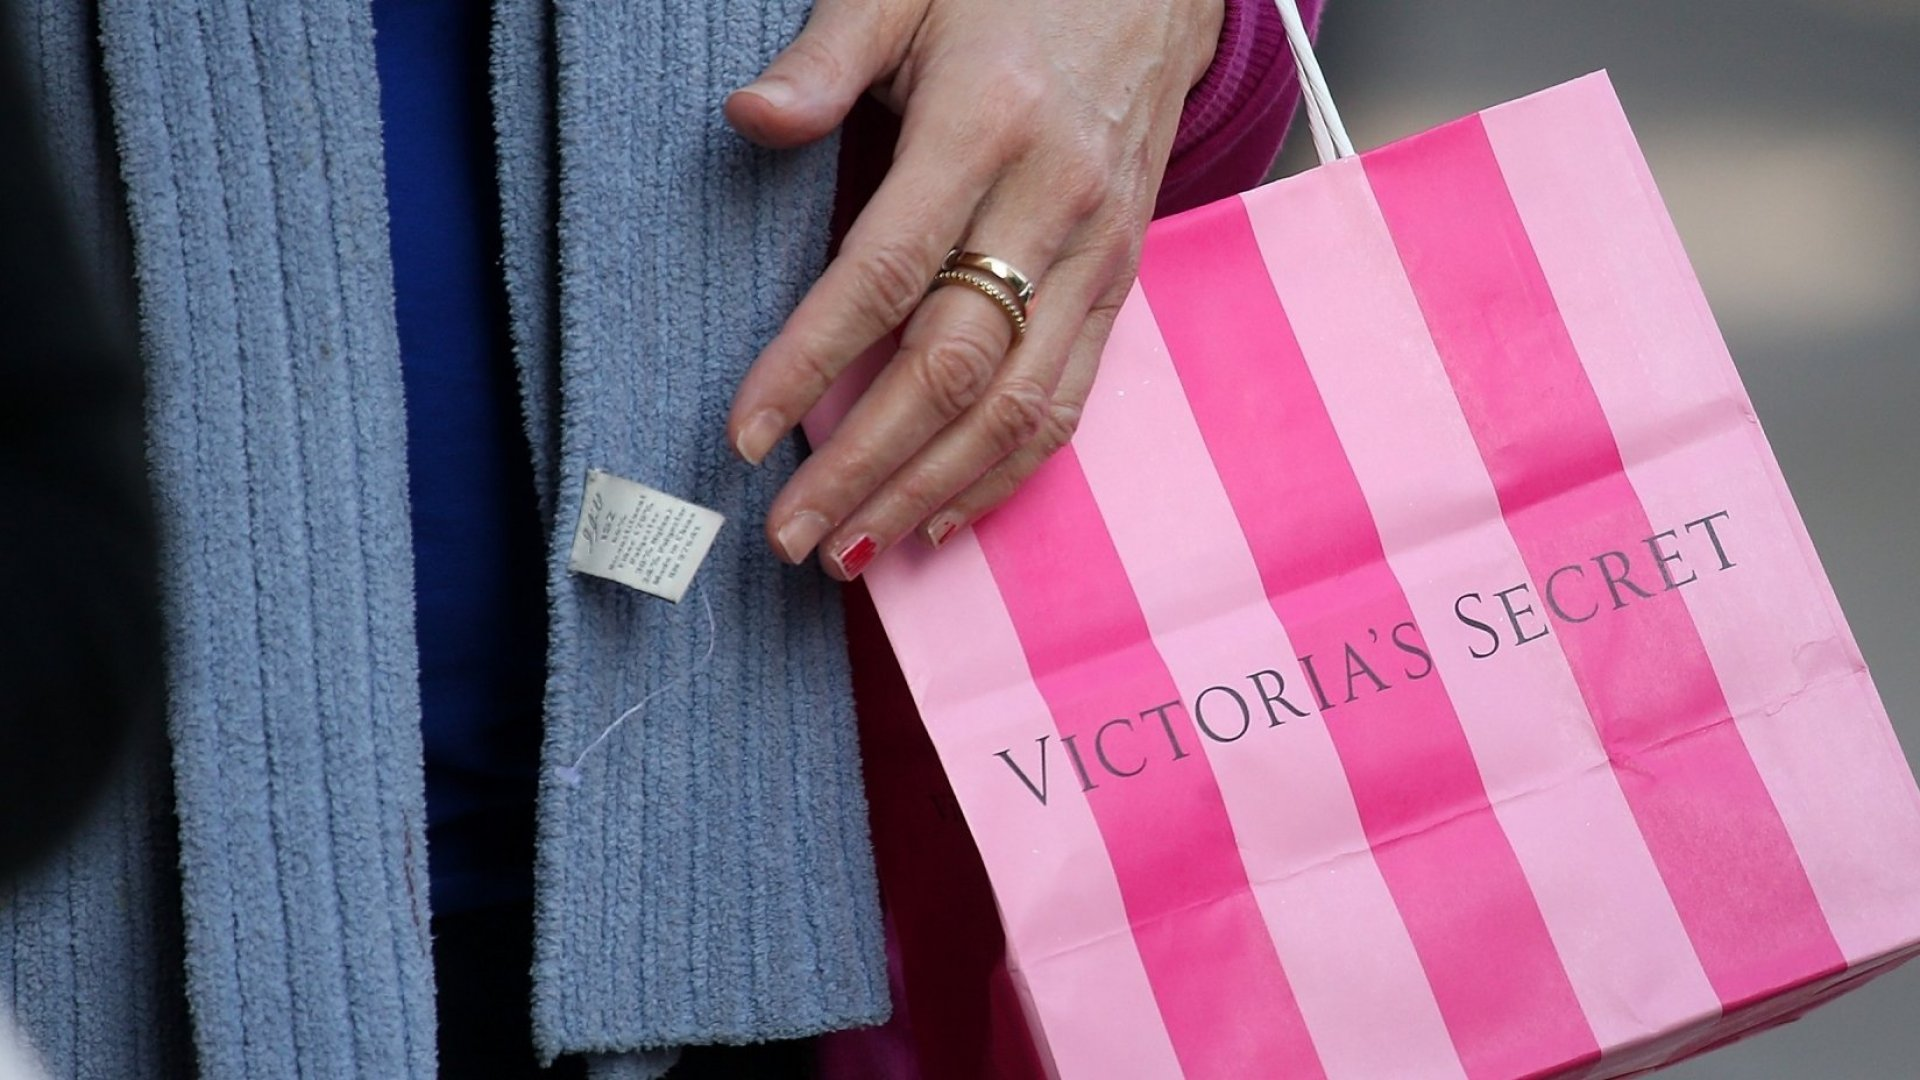 Does Your Brand Need a #MeToo Overhaul? Just Ask Victoria's Secret